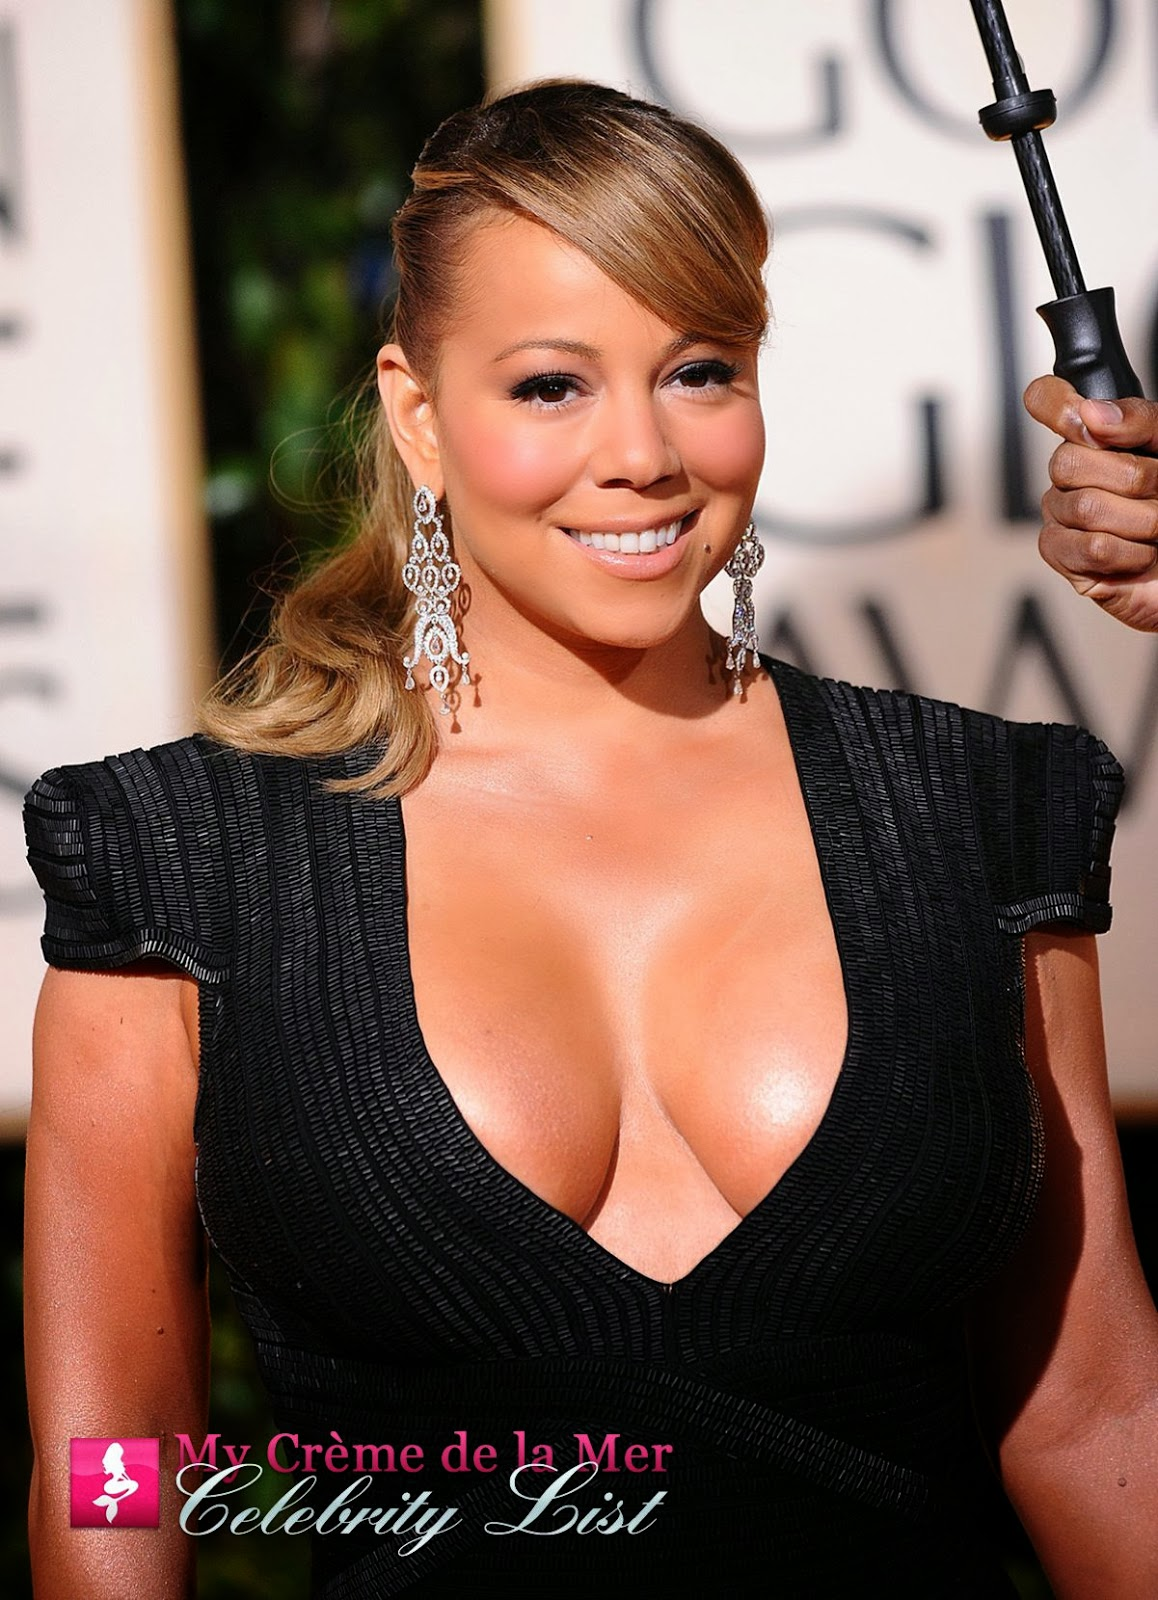 Songbird, producer and actress Mariah Carey is on the My Crème de la Mer Celebrity List, for using La Mer.